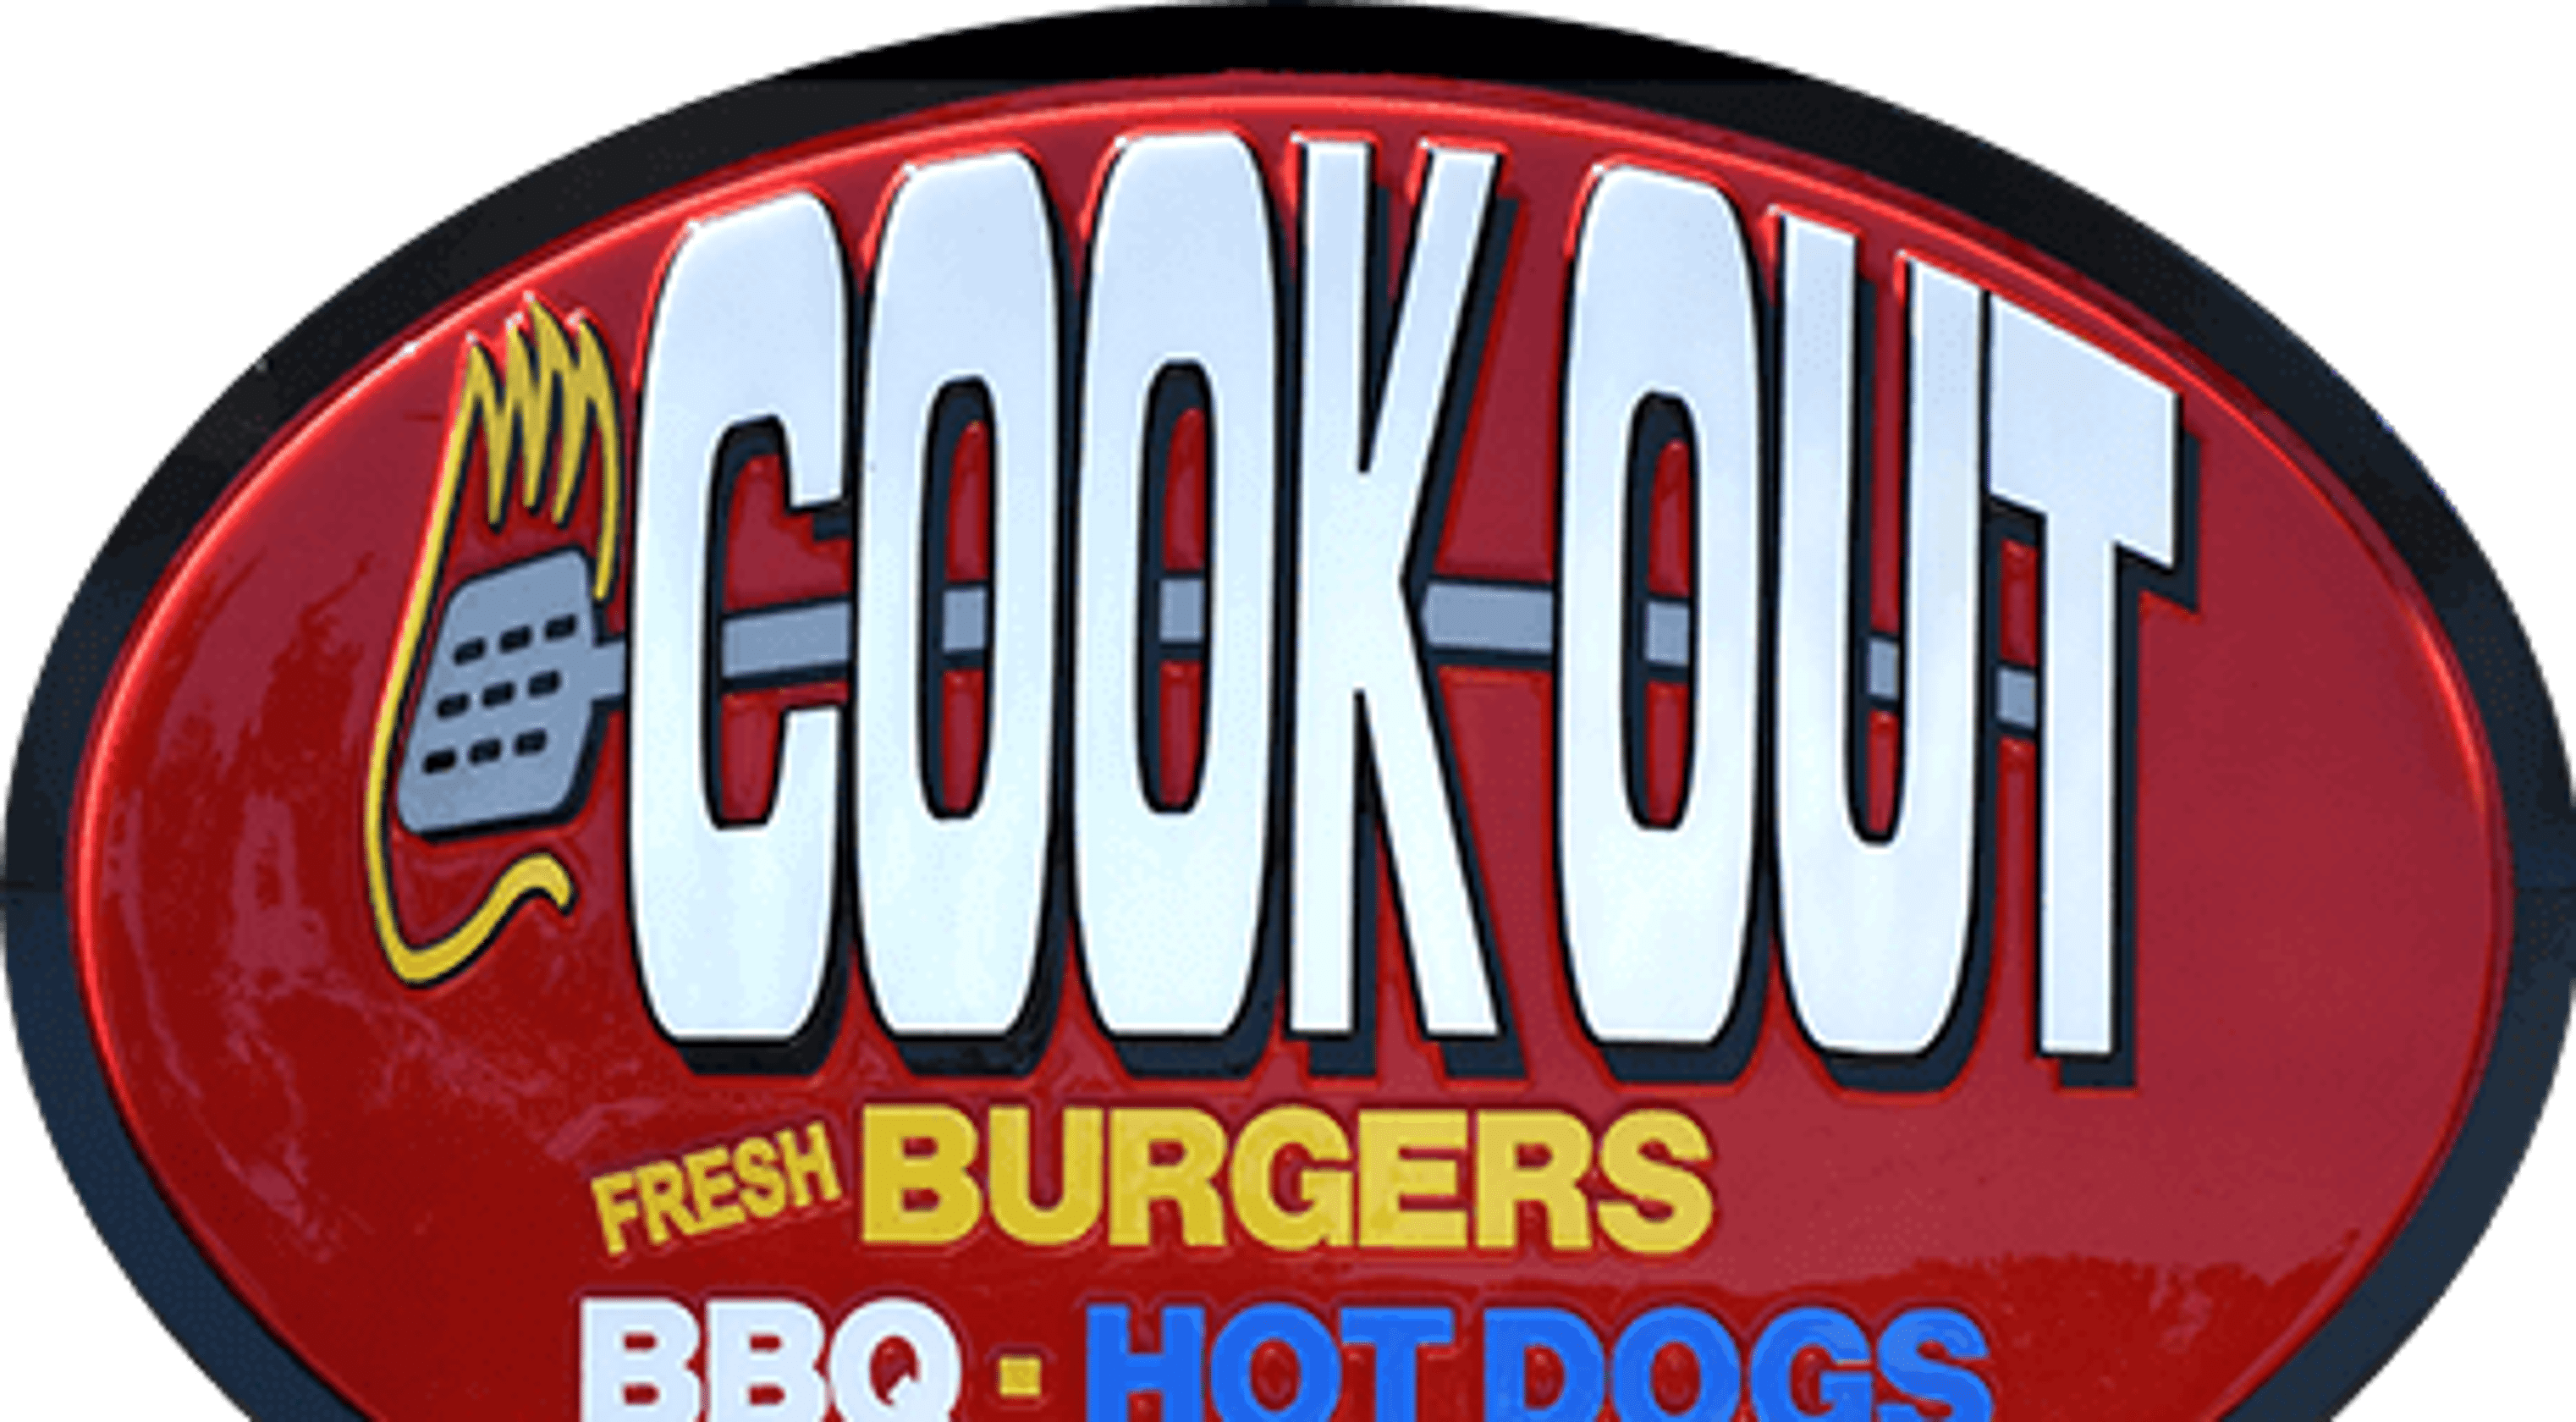 Cook Out is coming to Montgomery